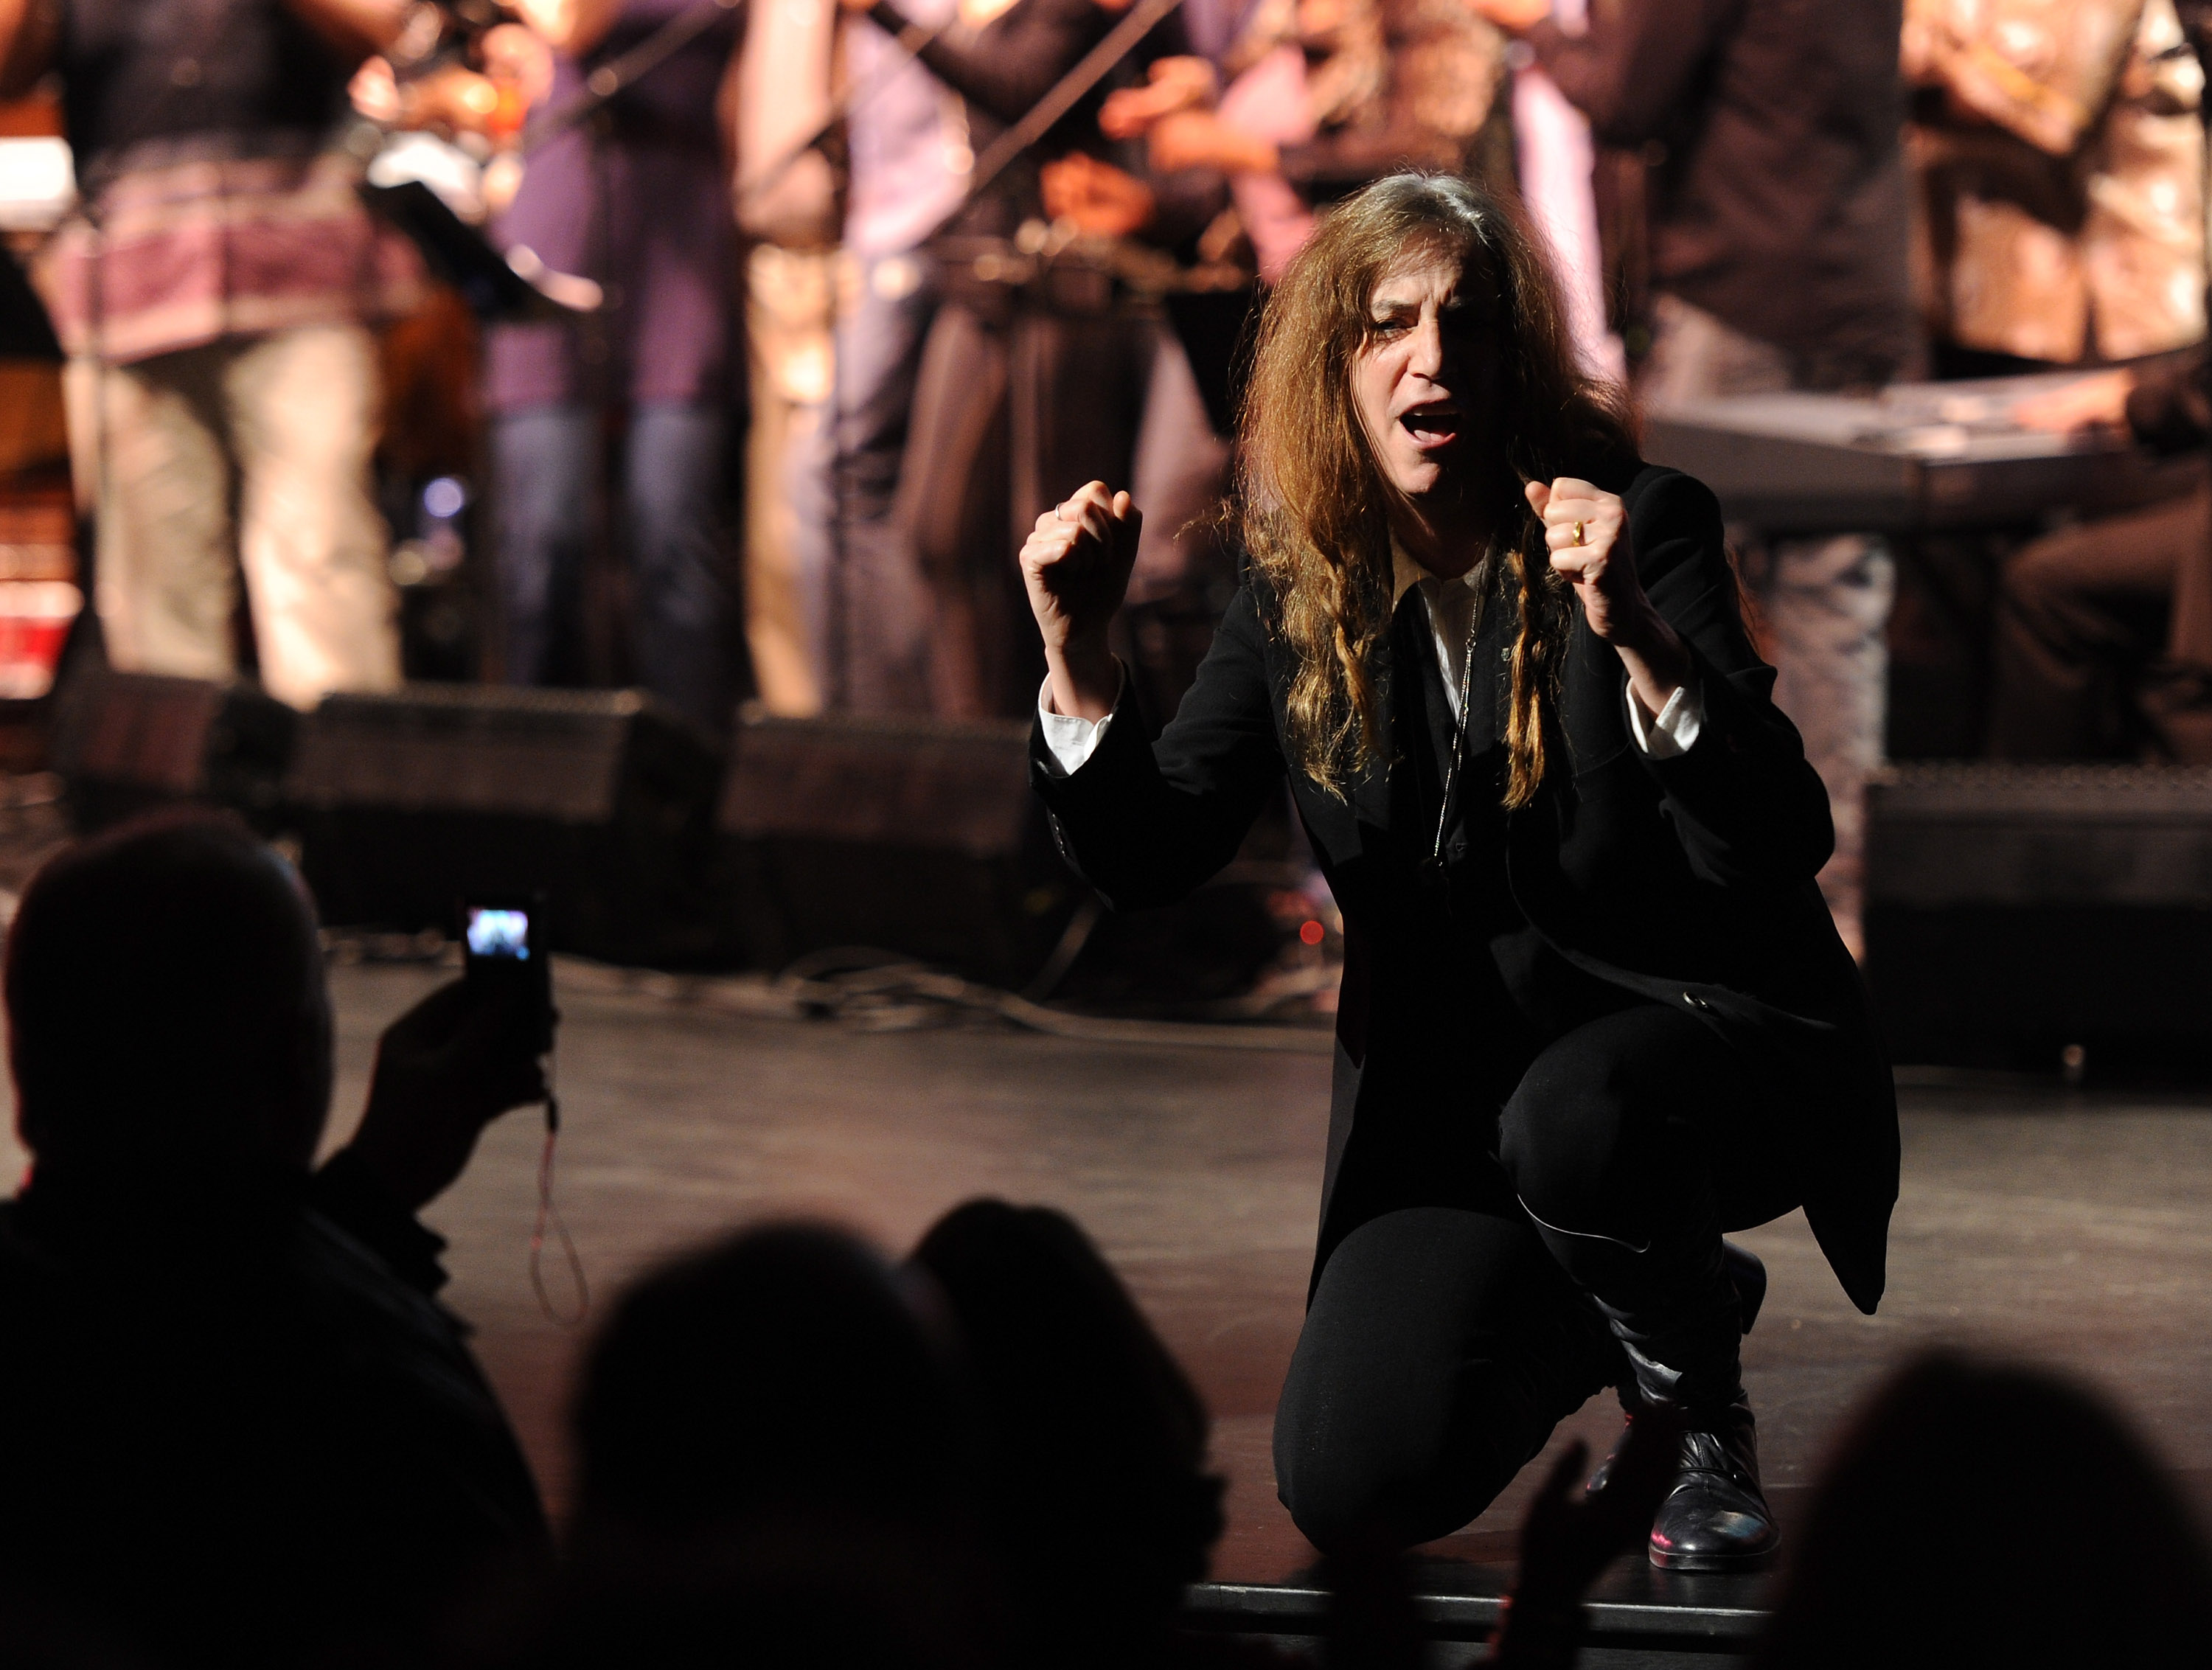 NEW YORK - NOVEMBER 12: Singer Patti Smith performs during Theatre Within's 30th Annual John Lennon Tribute Concert Benefitting the Playing For Change Foundation at the Beacon Theatre on November 12, 2010 in New York, City. (Photo by Stephen Lovekin/Getty Images)